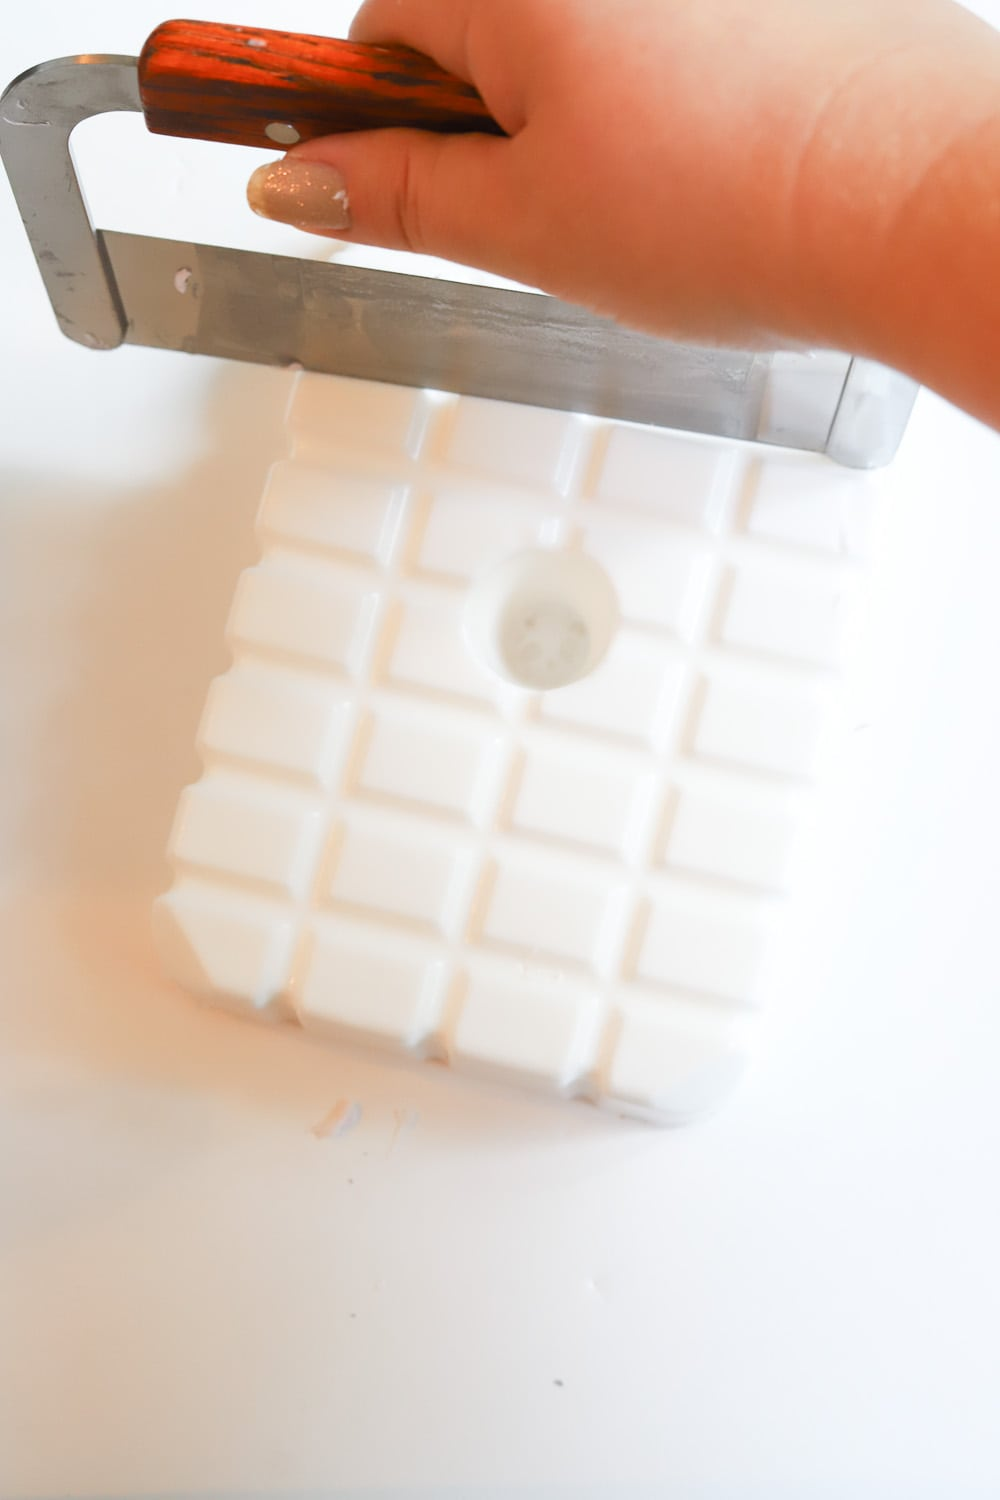 Cutting a bar of soap to make melt and pour soap